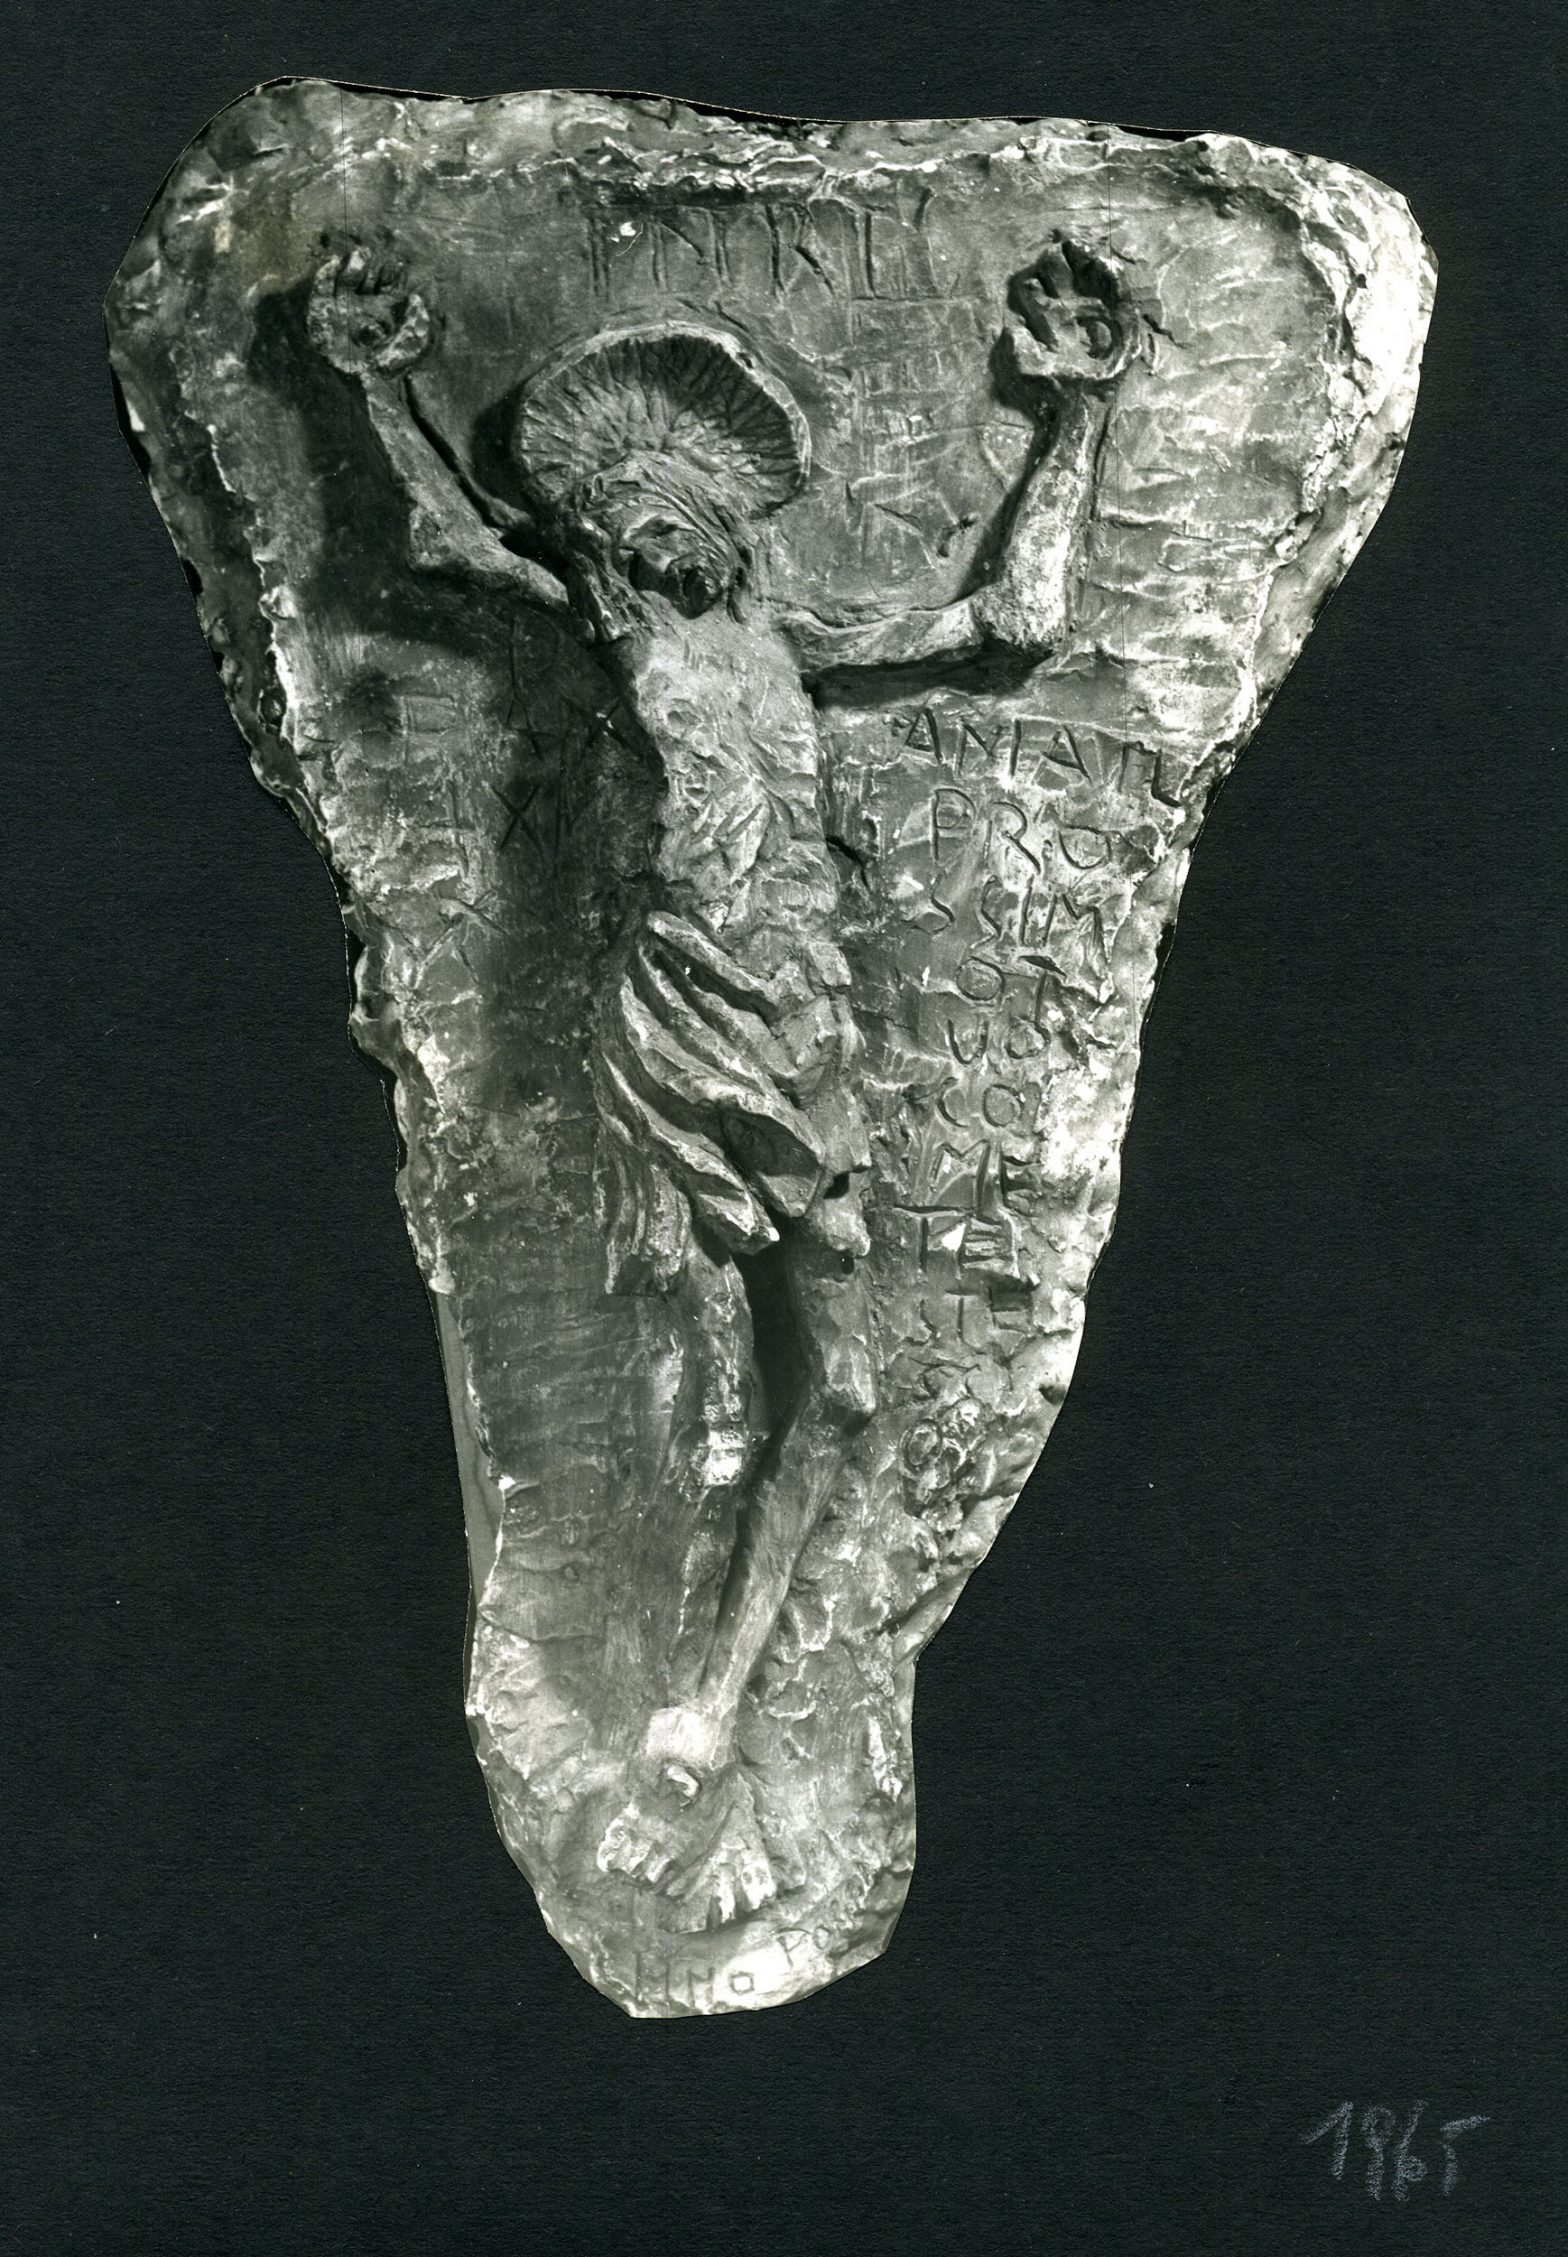 Cutted out photograph of a sculpture.